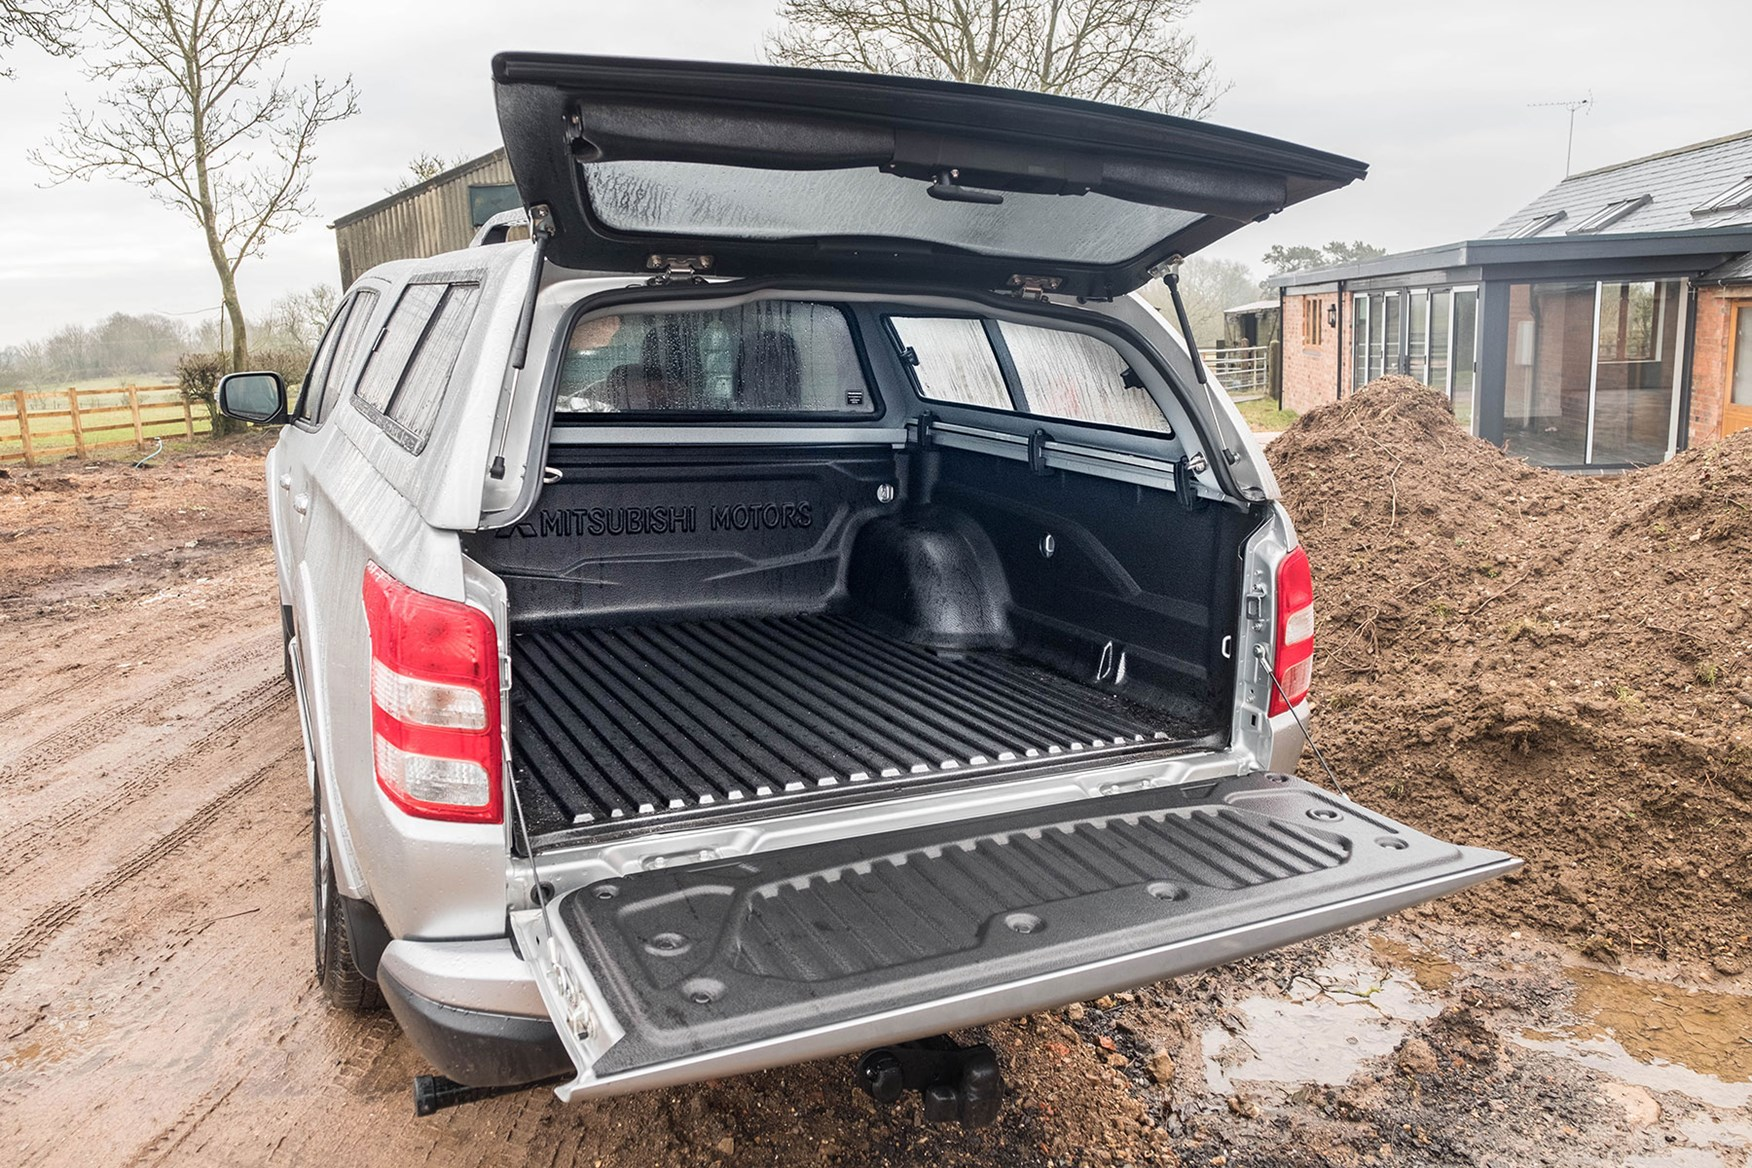 Mistubishi L200 Warrior 2018 review - rear view with Truckman top, silver, tailgates open